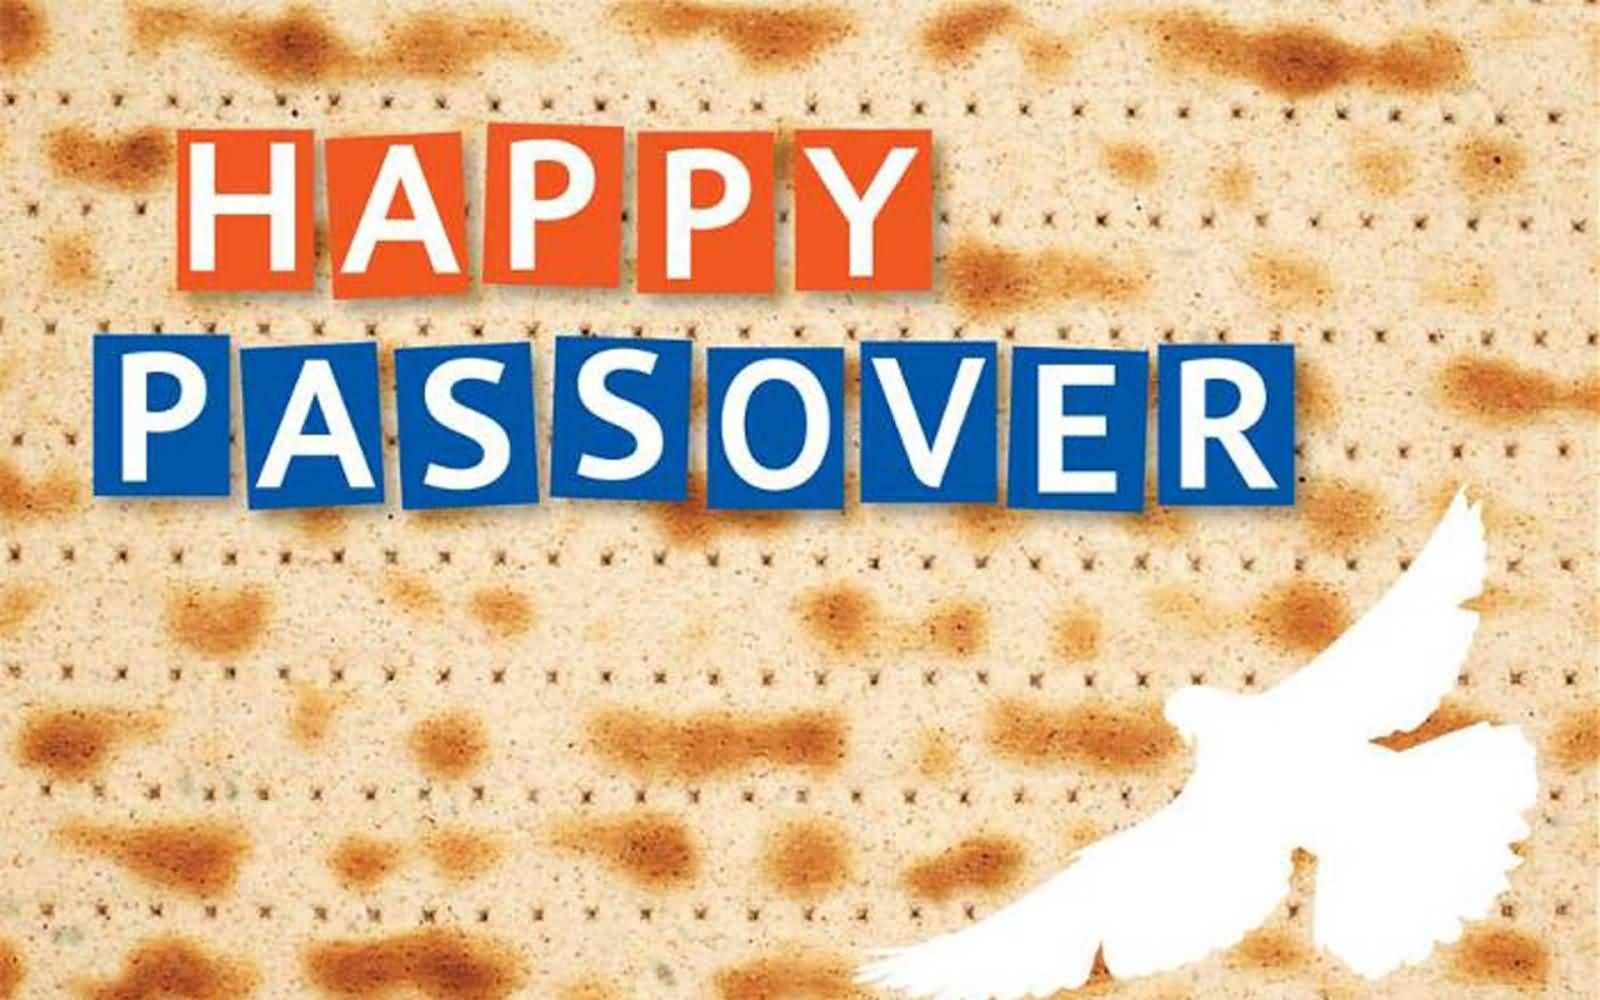 18-Happy Passover Wishes